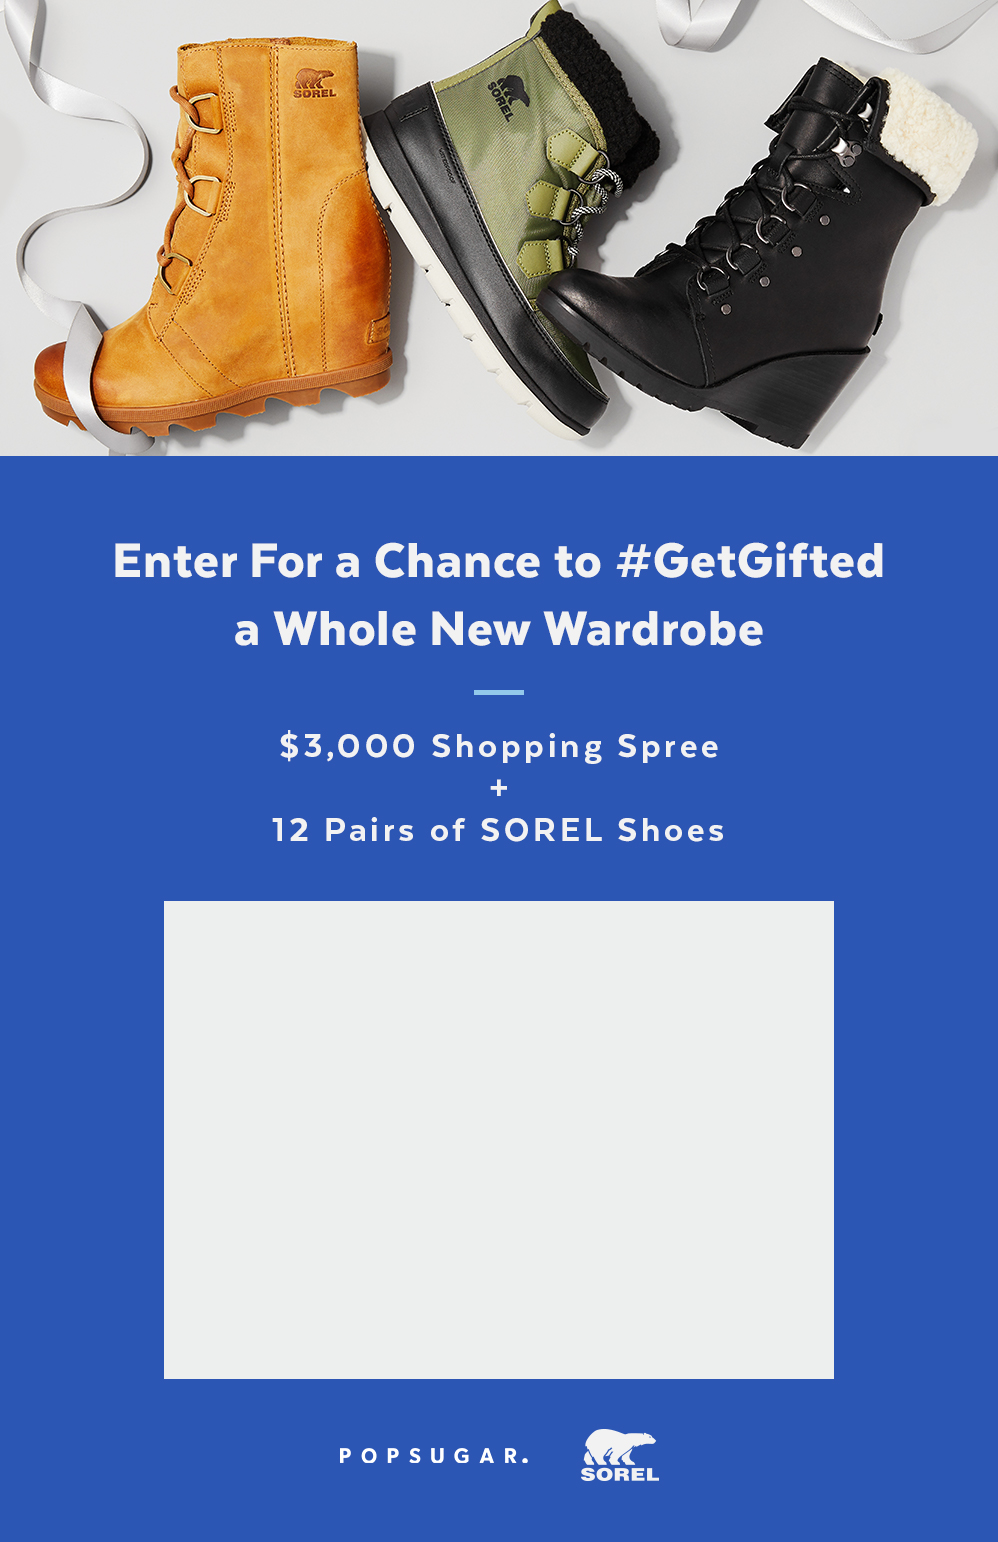 Sorel Boot Giveaway Popsugar Fashion Plan Your Shopping Spree